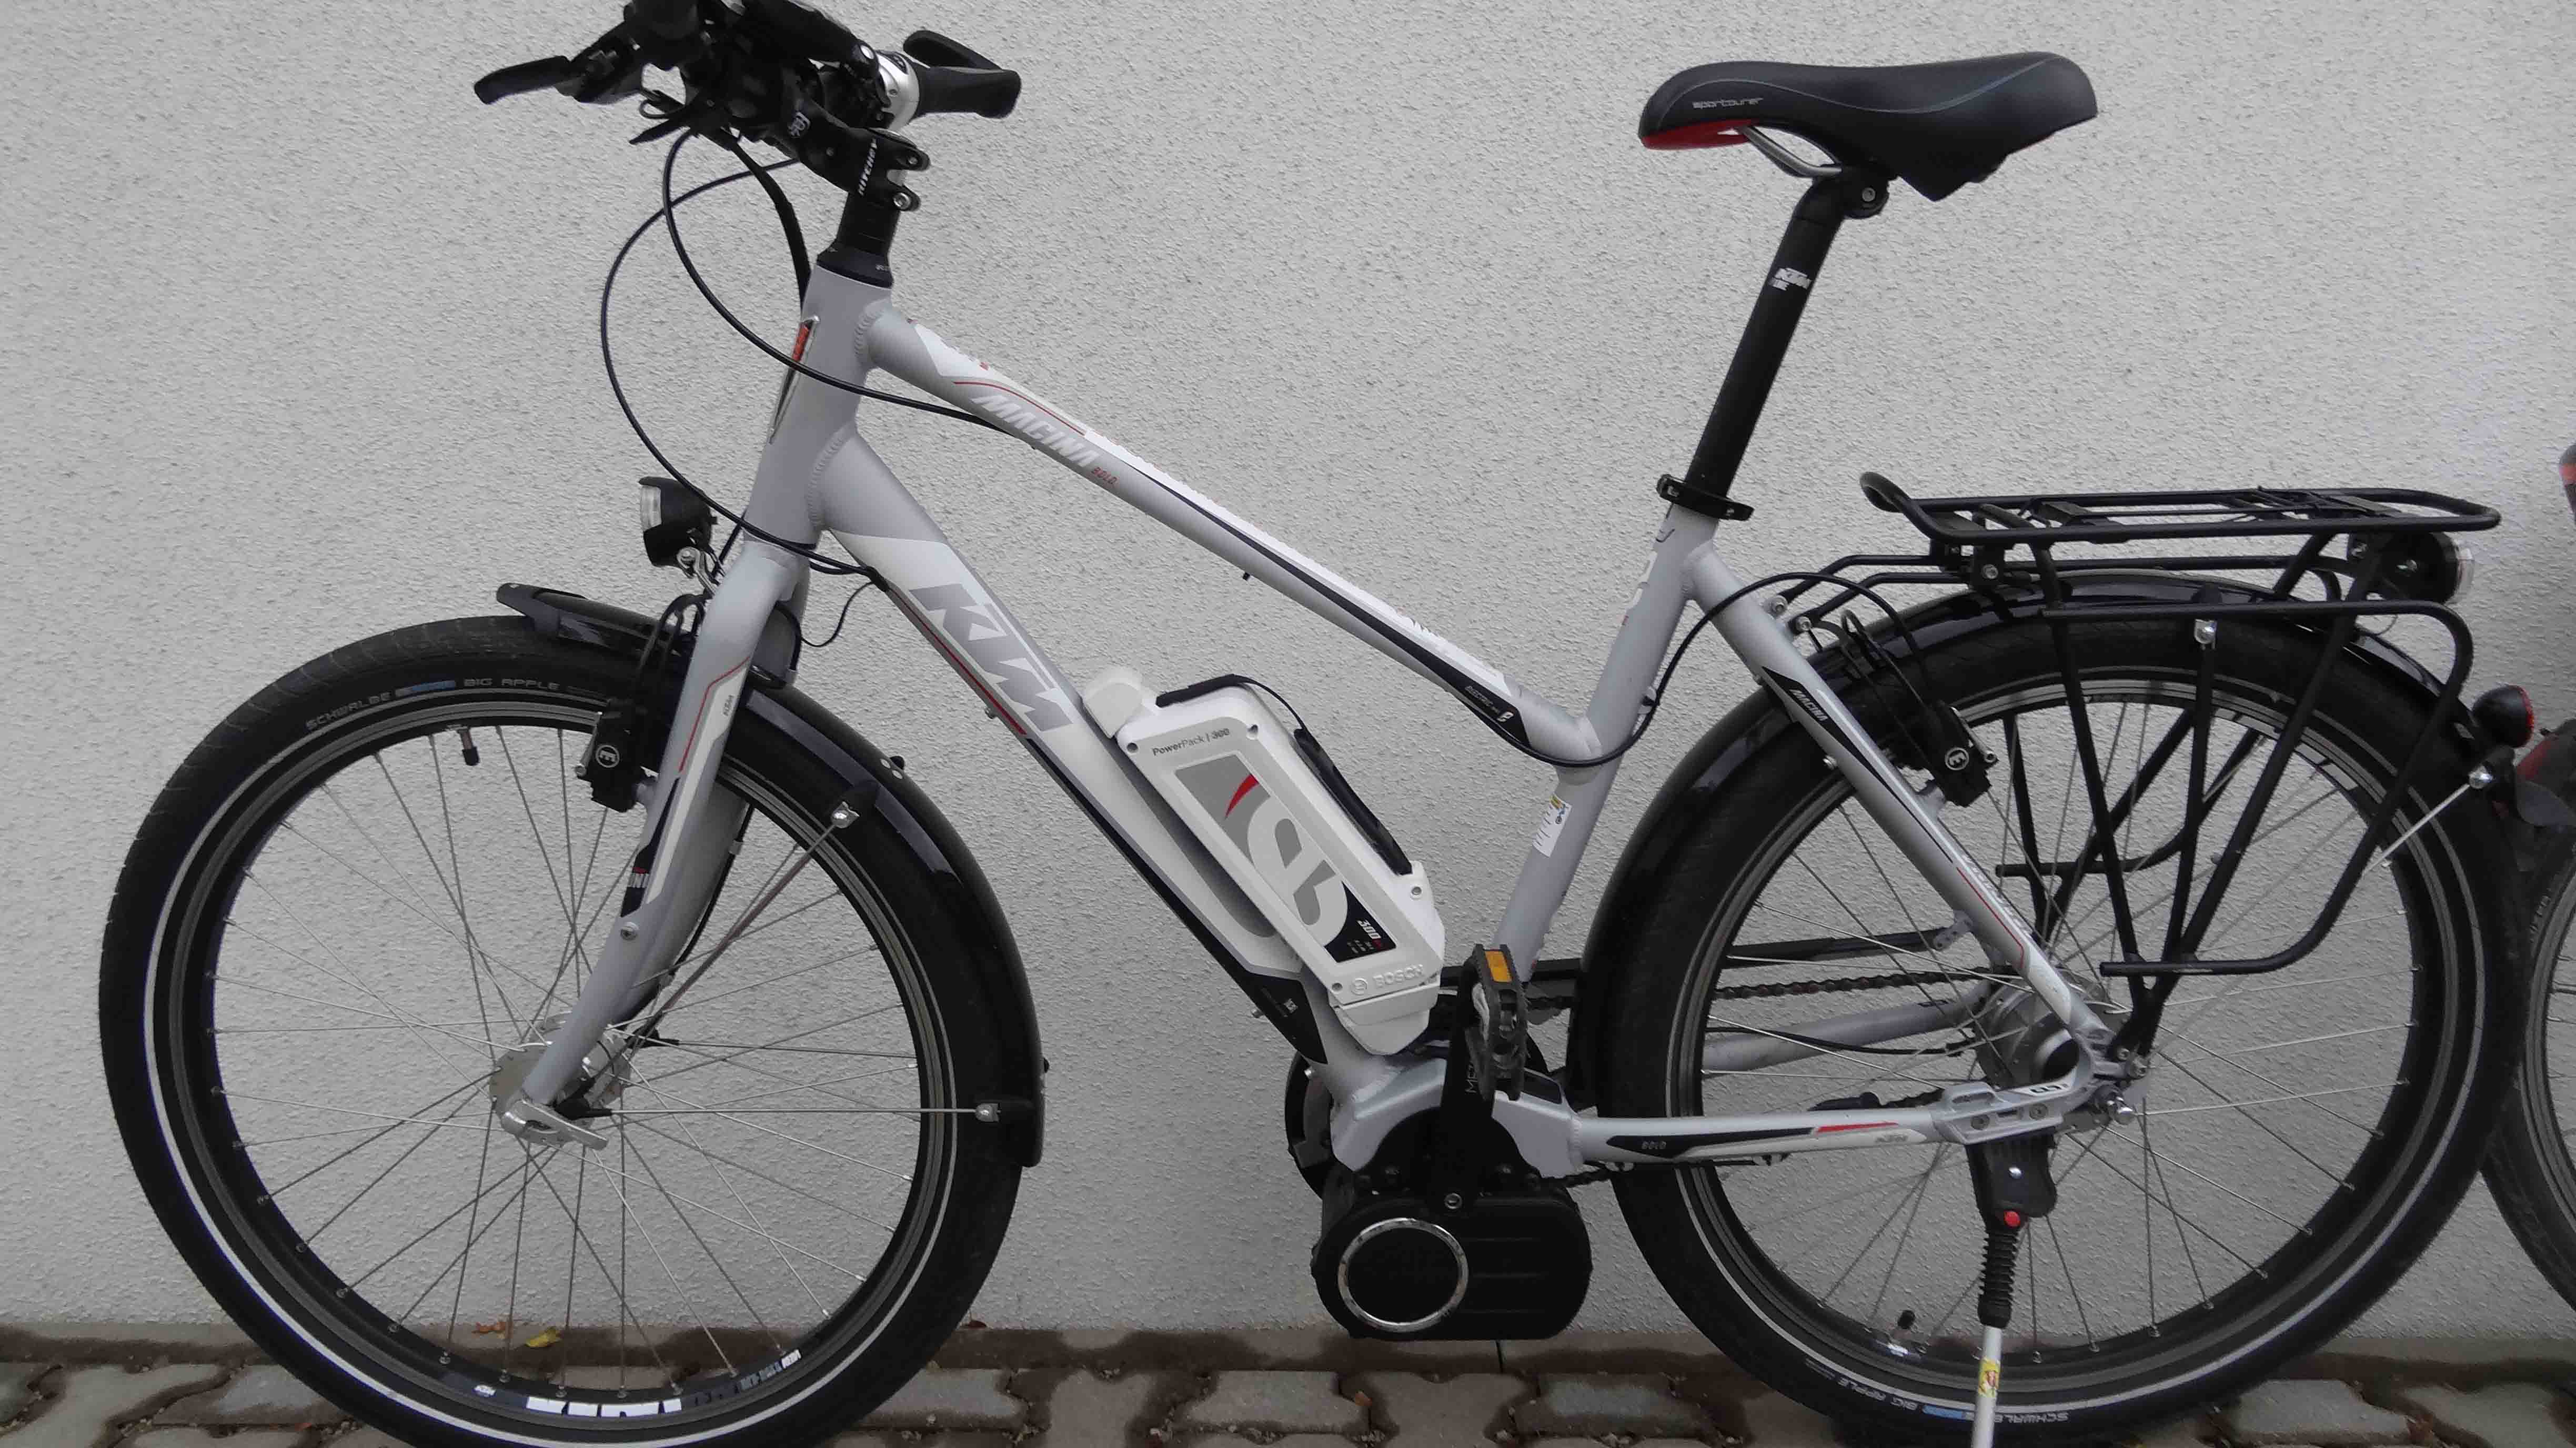 E-bike rentals: Bosch middle motors, hydraulic brakes and wide tyres make the most dramatic climbs on gravel roads in the Fränkische Schweiz (Franconian Switzerland) region accessible even to inexperienced and unfit cyclists. Day 1 €30, further days €25 each